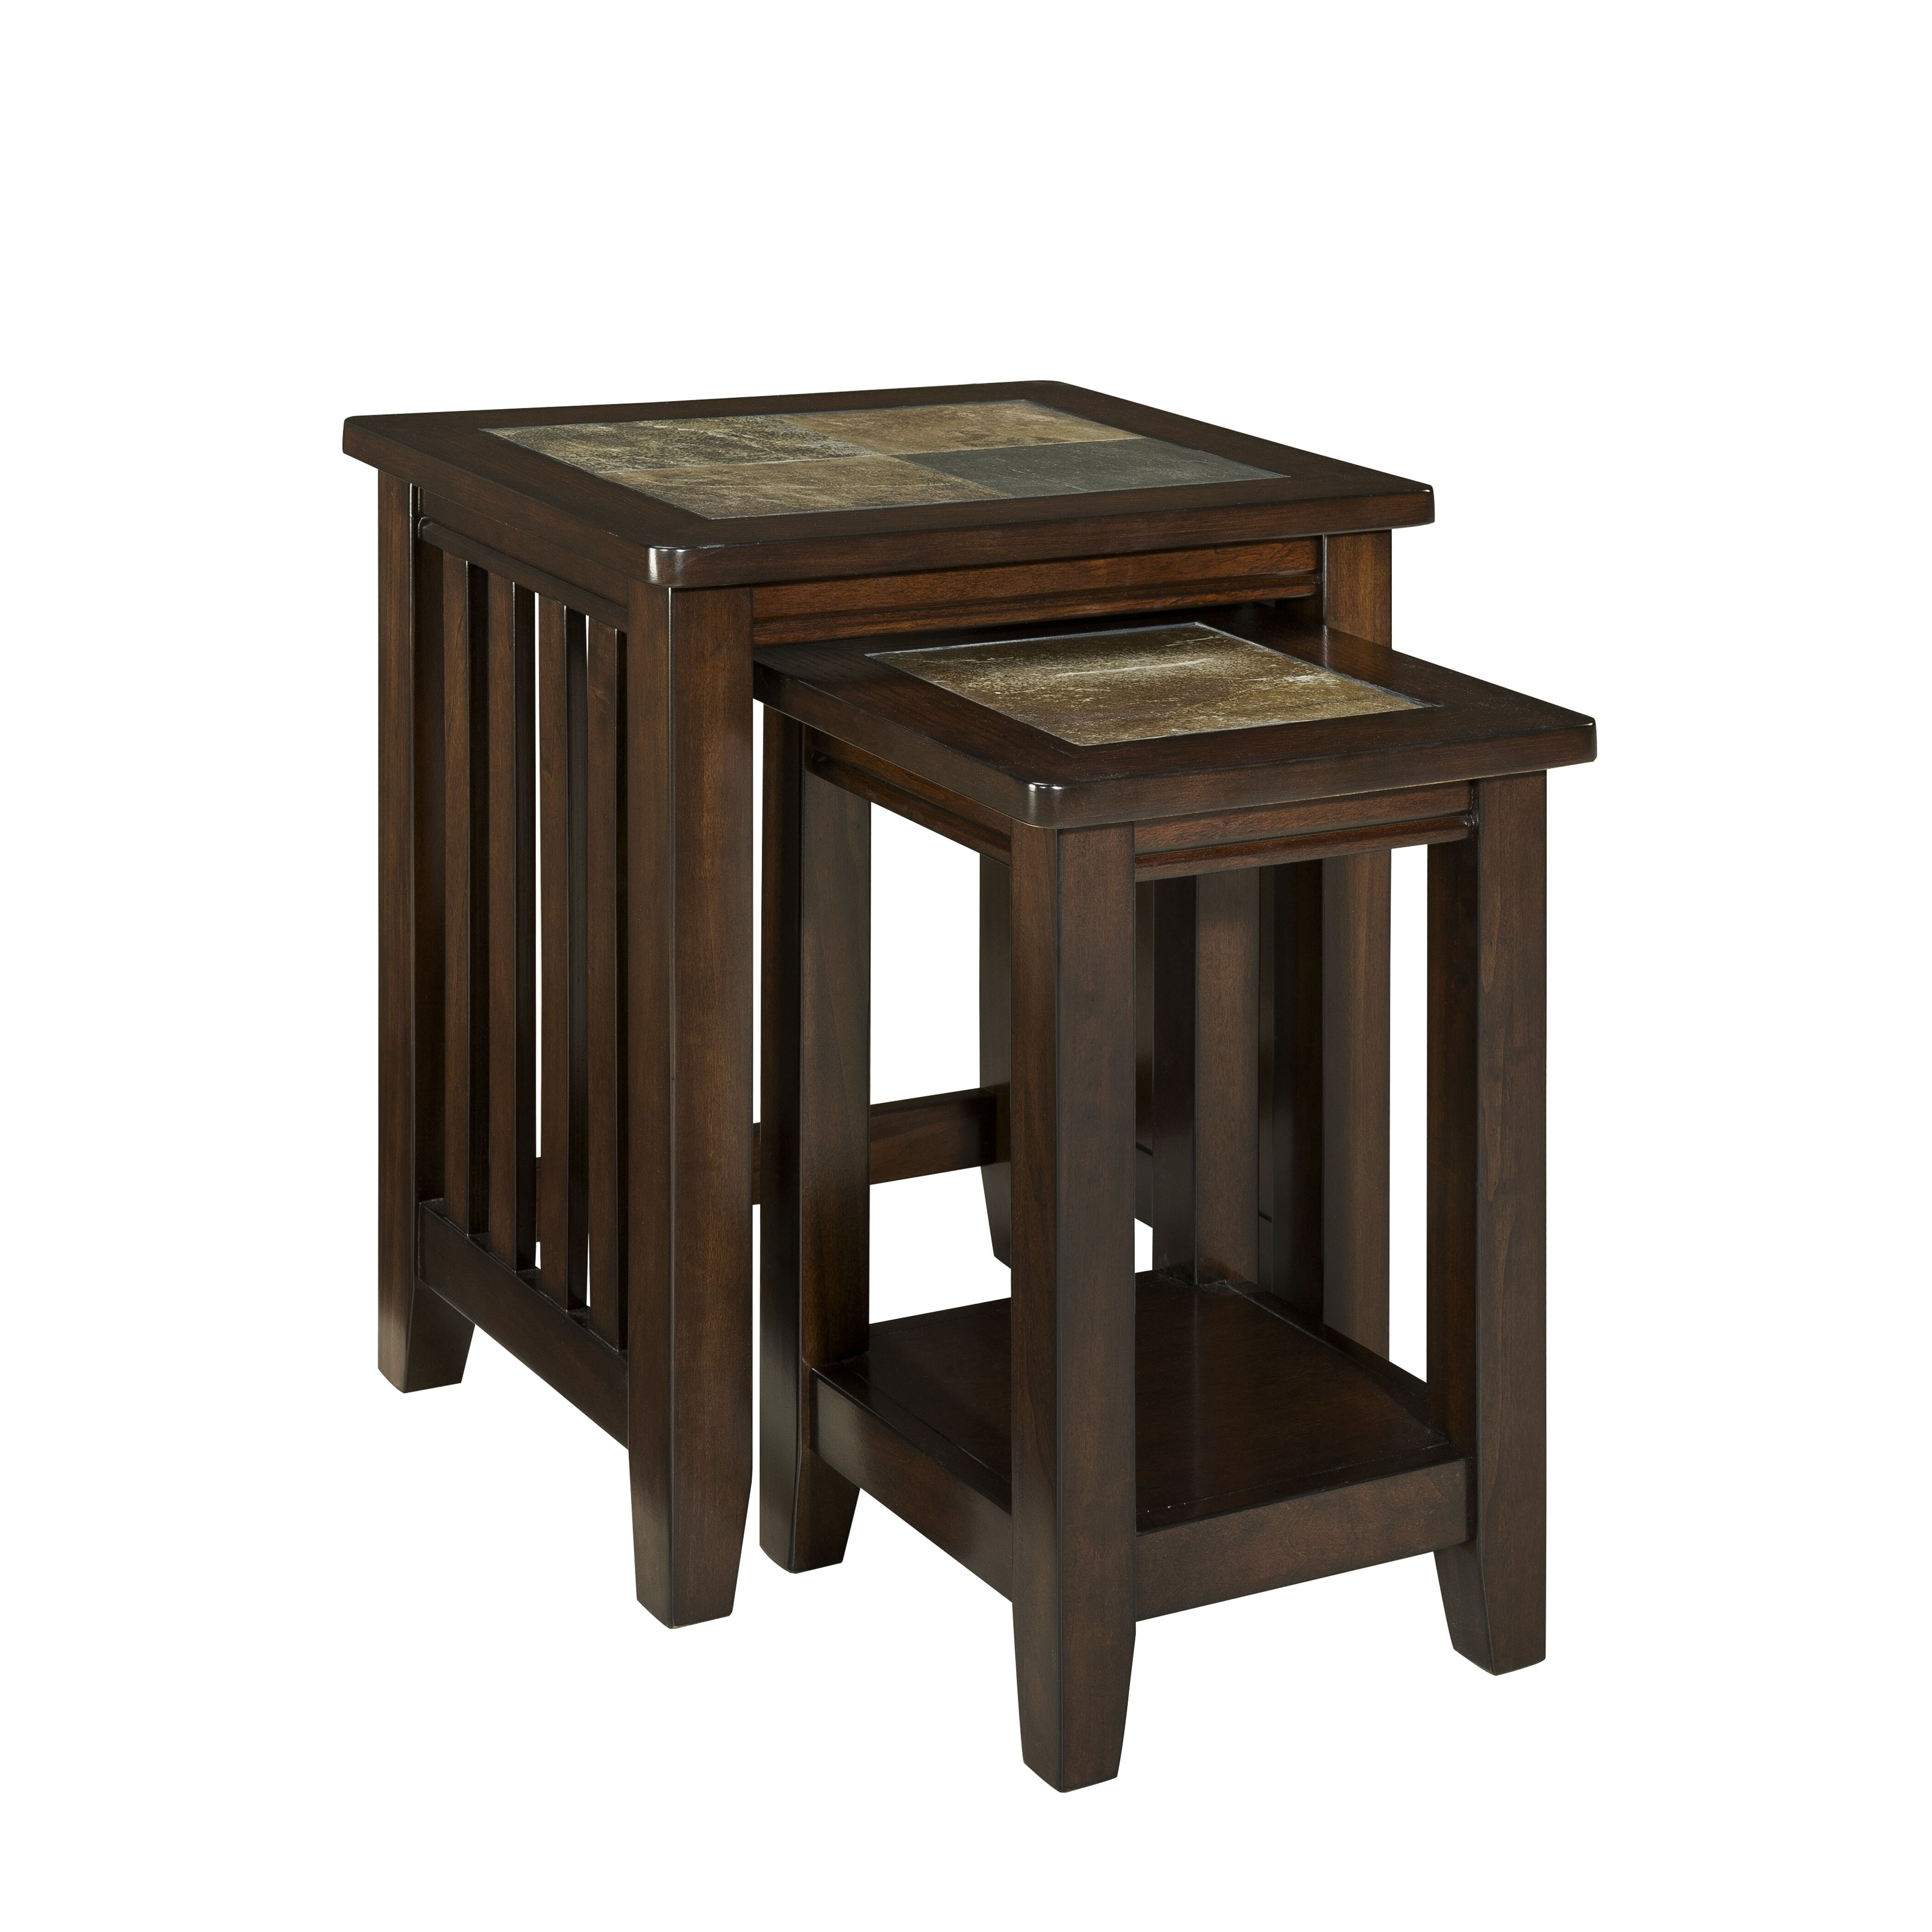 Standard Furniture Napa Valley 2 Piece Nesting Tables Reviews